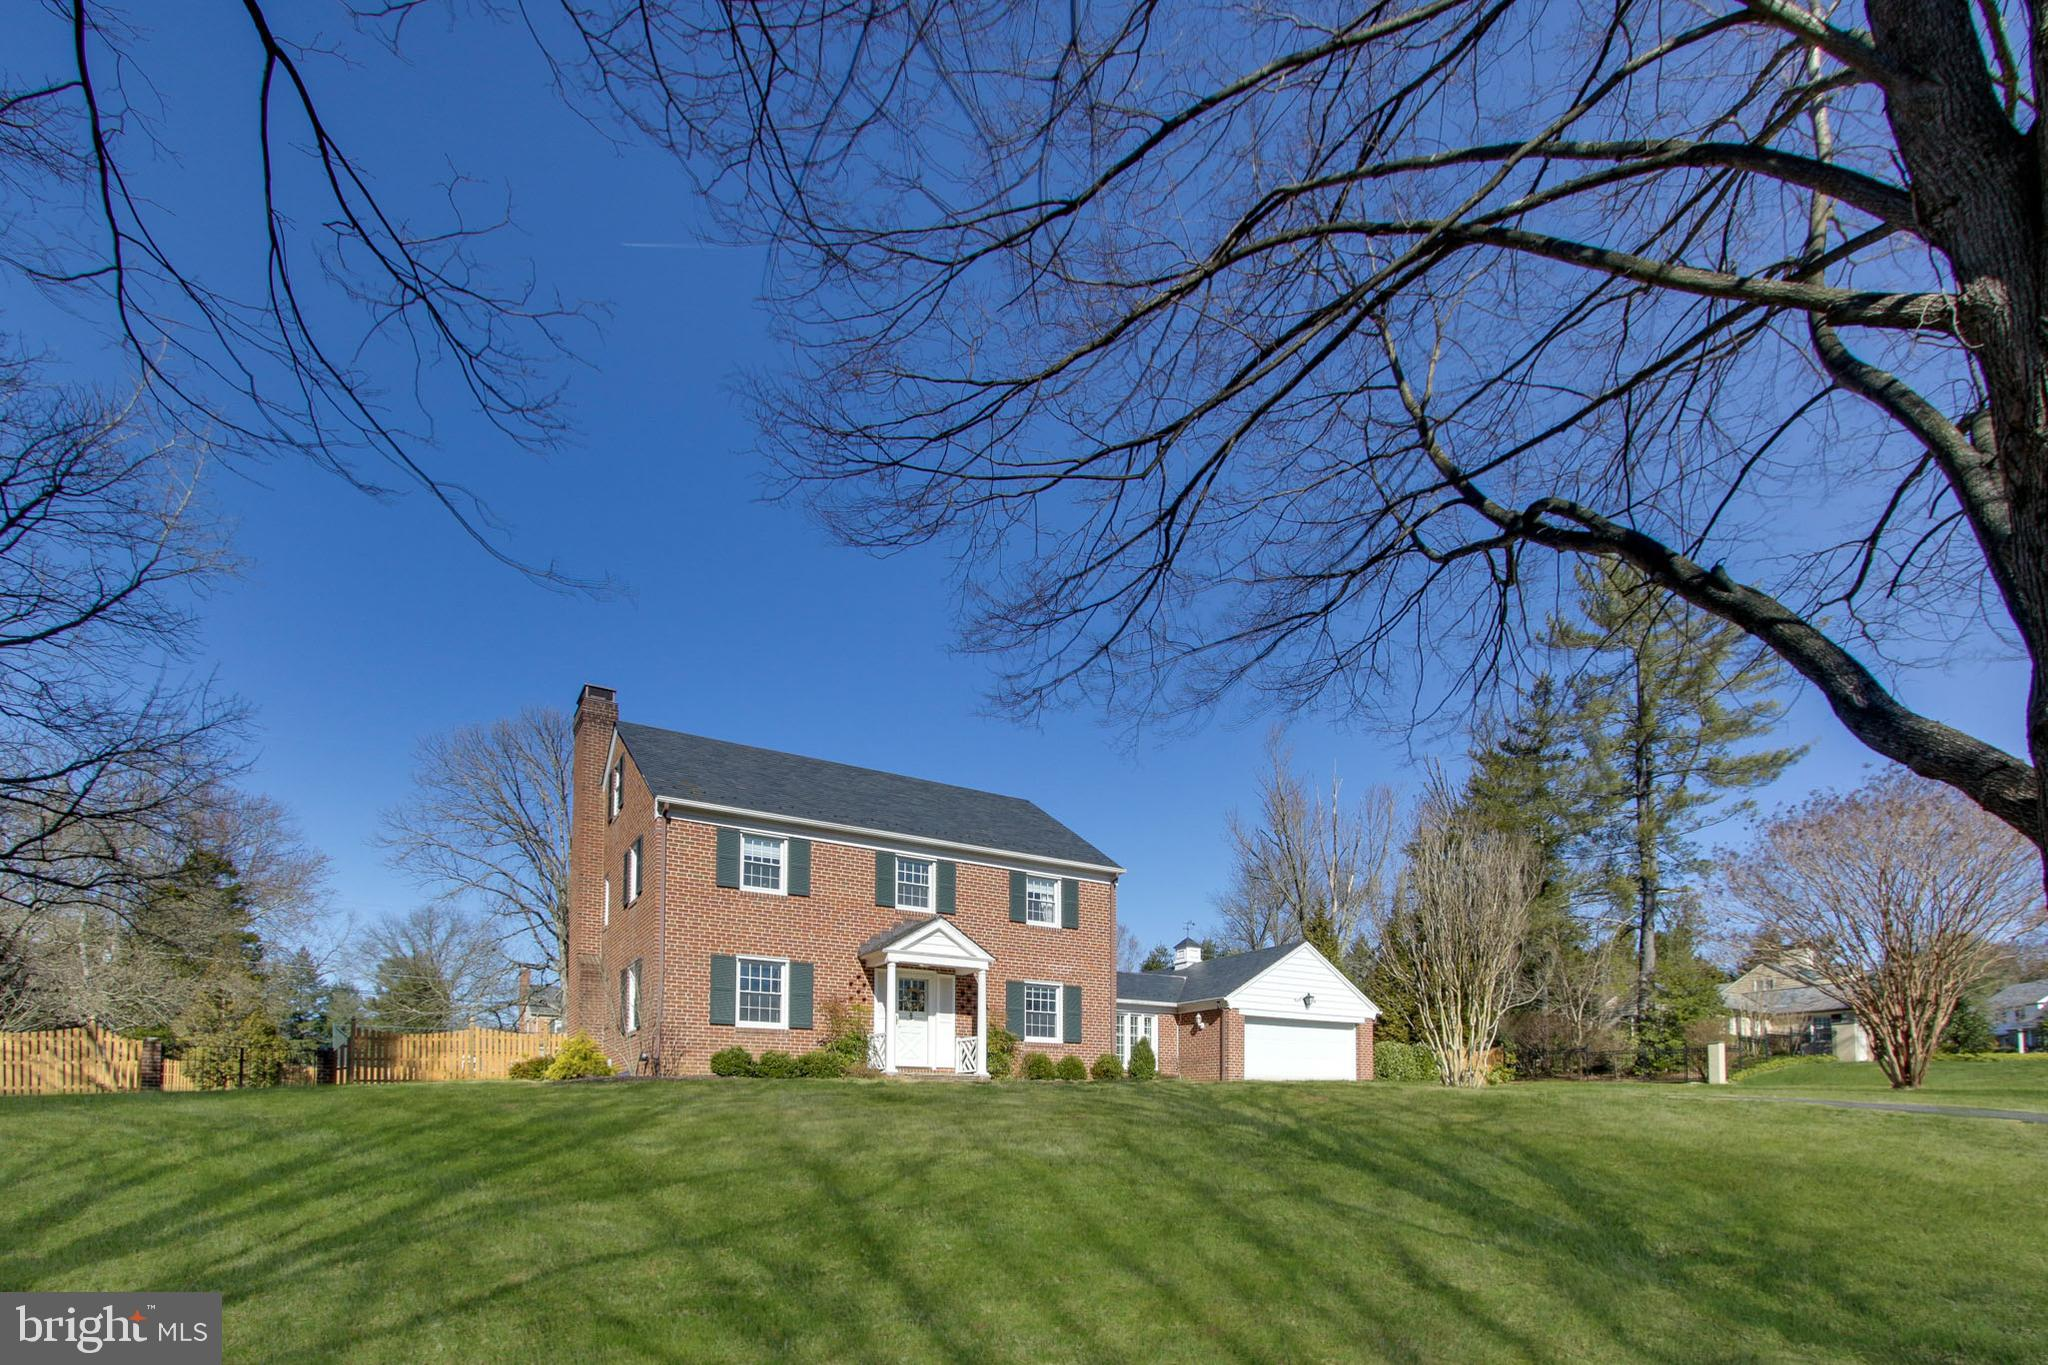 2202 BOXMERE ROAD, LUTHERVILLE TIMONIUM, MD 21093